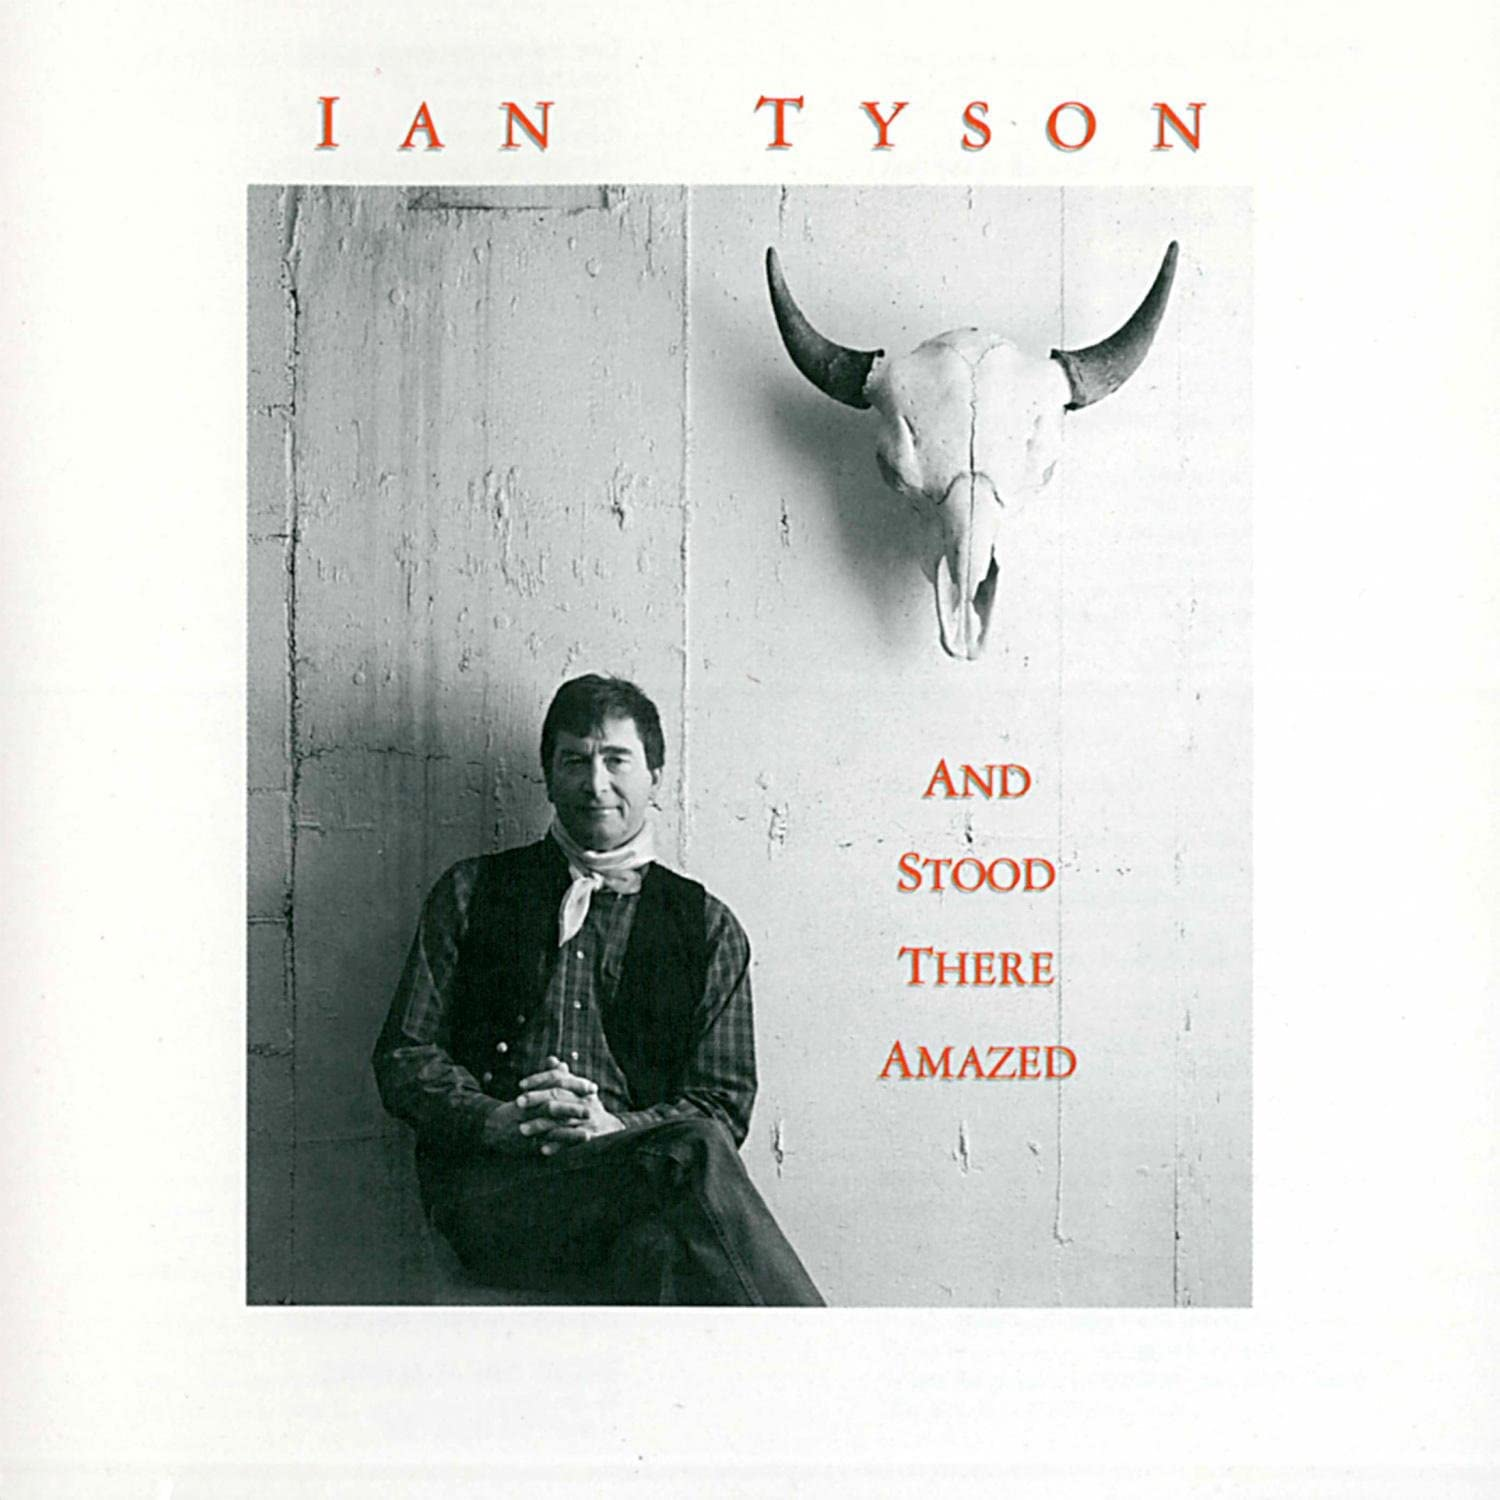 Ian Tyson - And Stood There Amazed, Audio CD